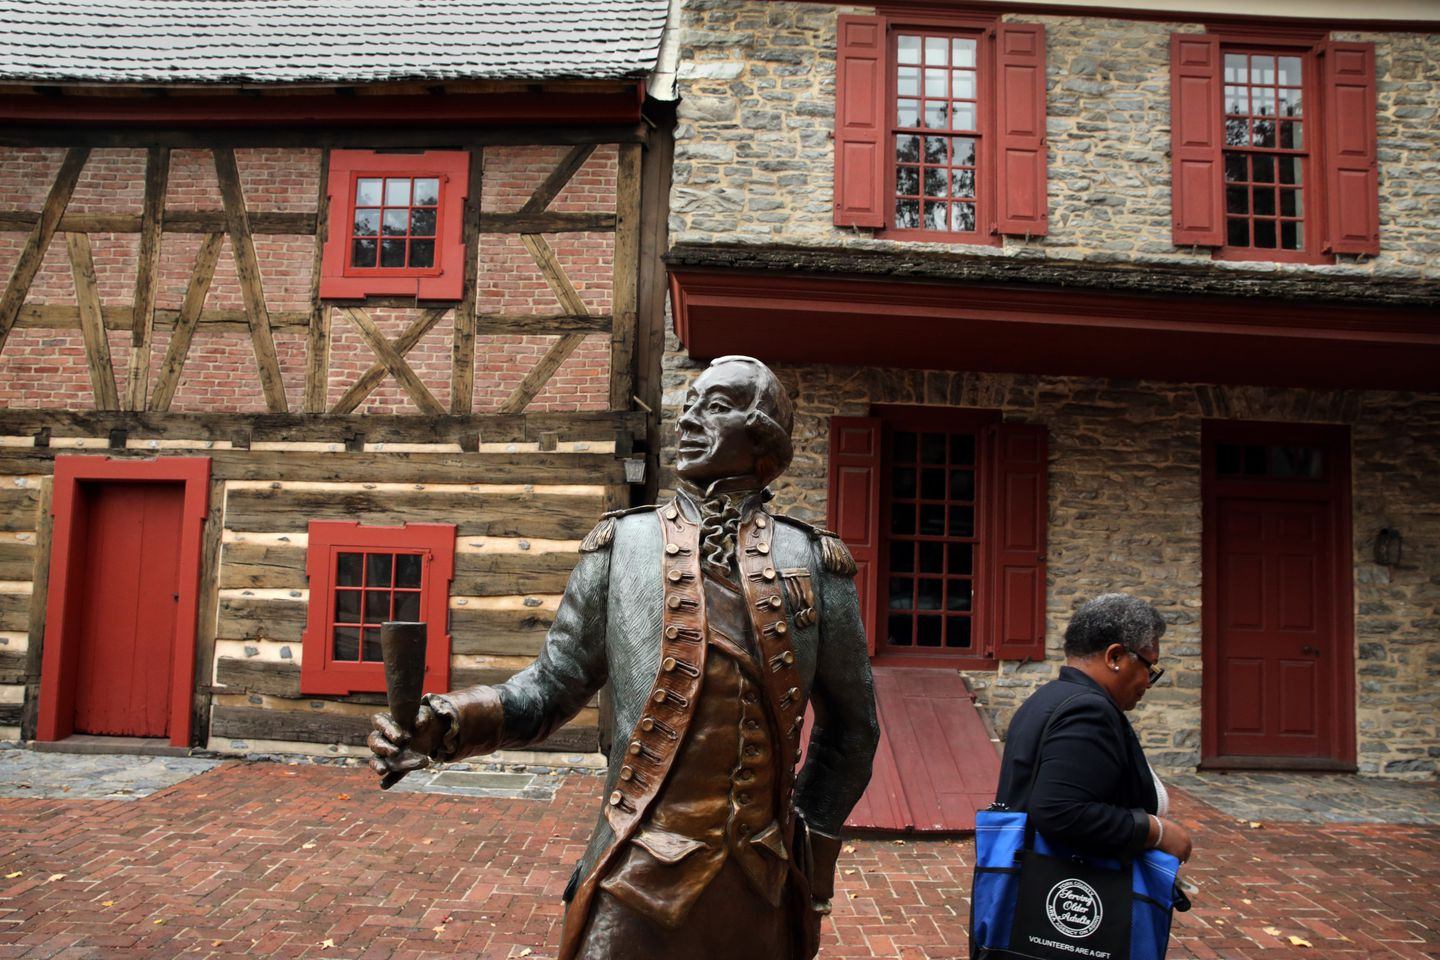 A statue of General Marquis de Lafayette stood outside Golden Plough Tavern and the Gates House, two of the oldest historical buildings in downtown York.